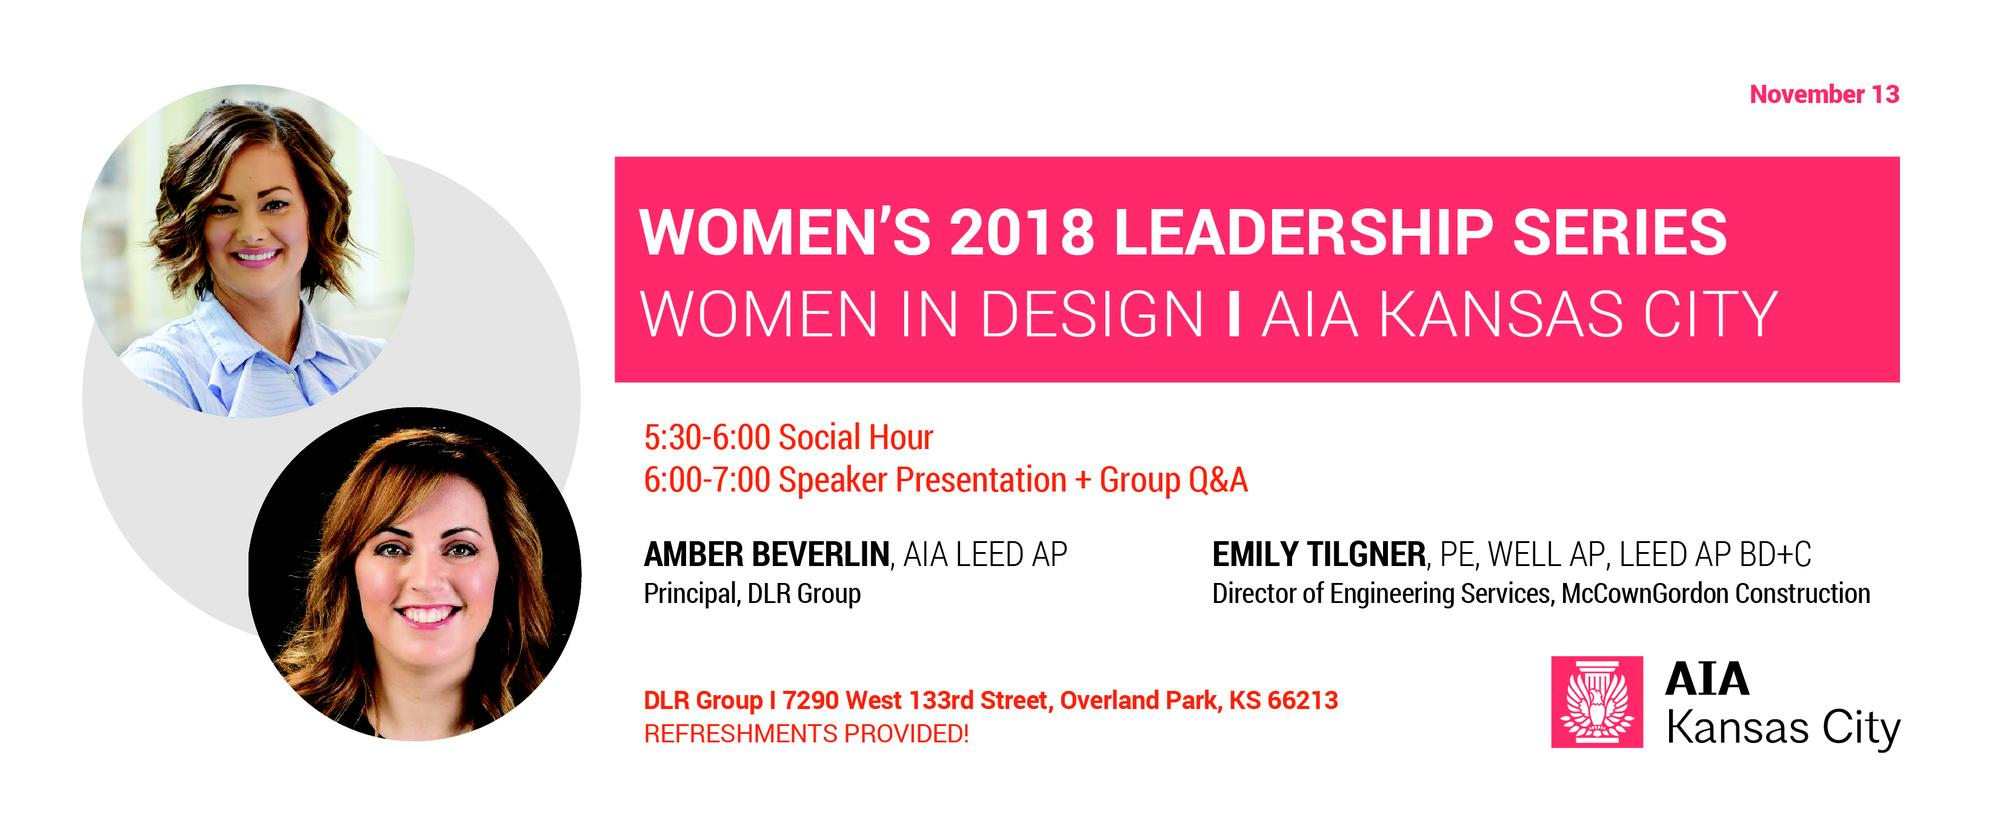 WiD: Women's Leadership Series: Amber Beverlin, AIA and Emily Tilgner, PE